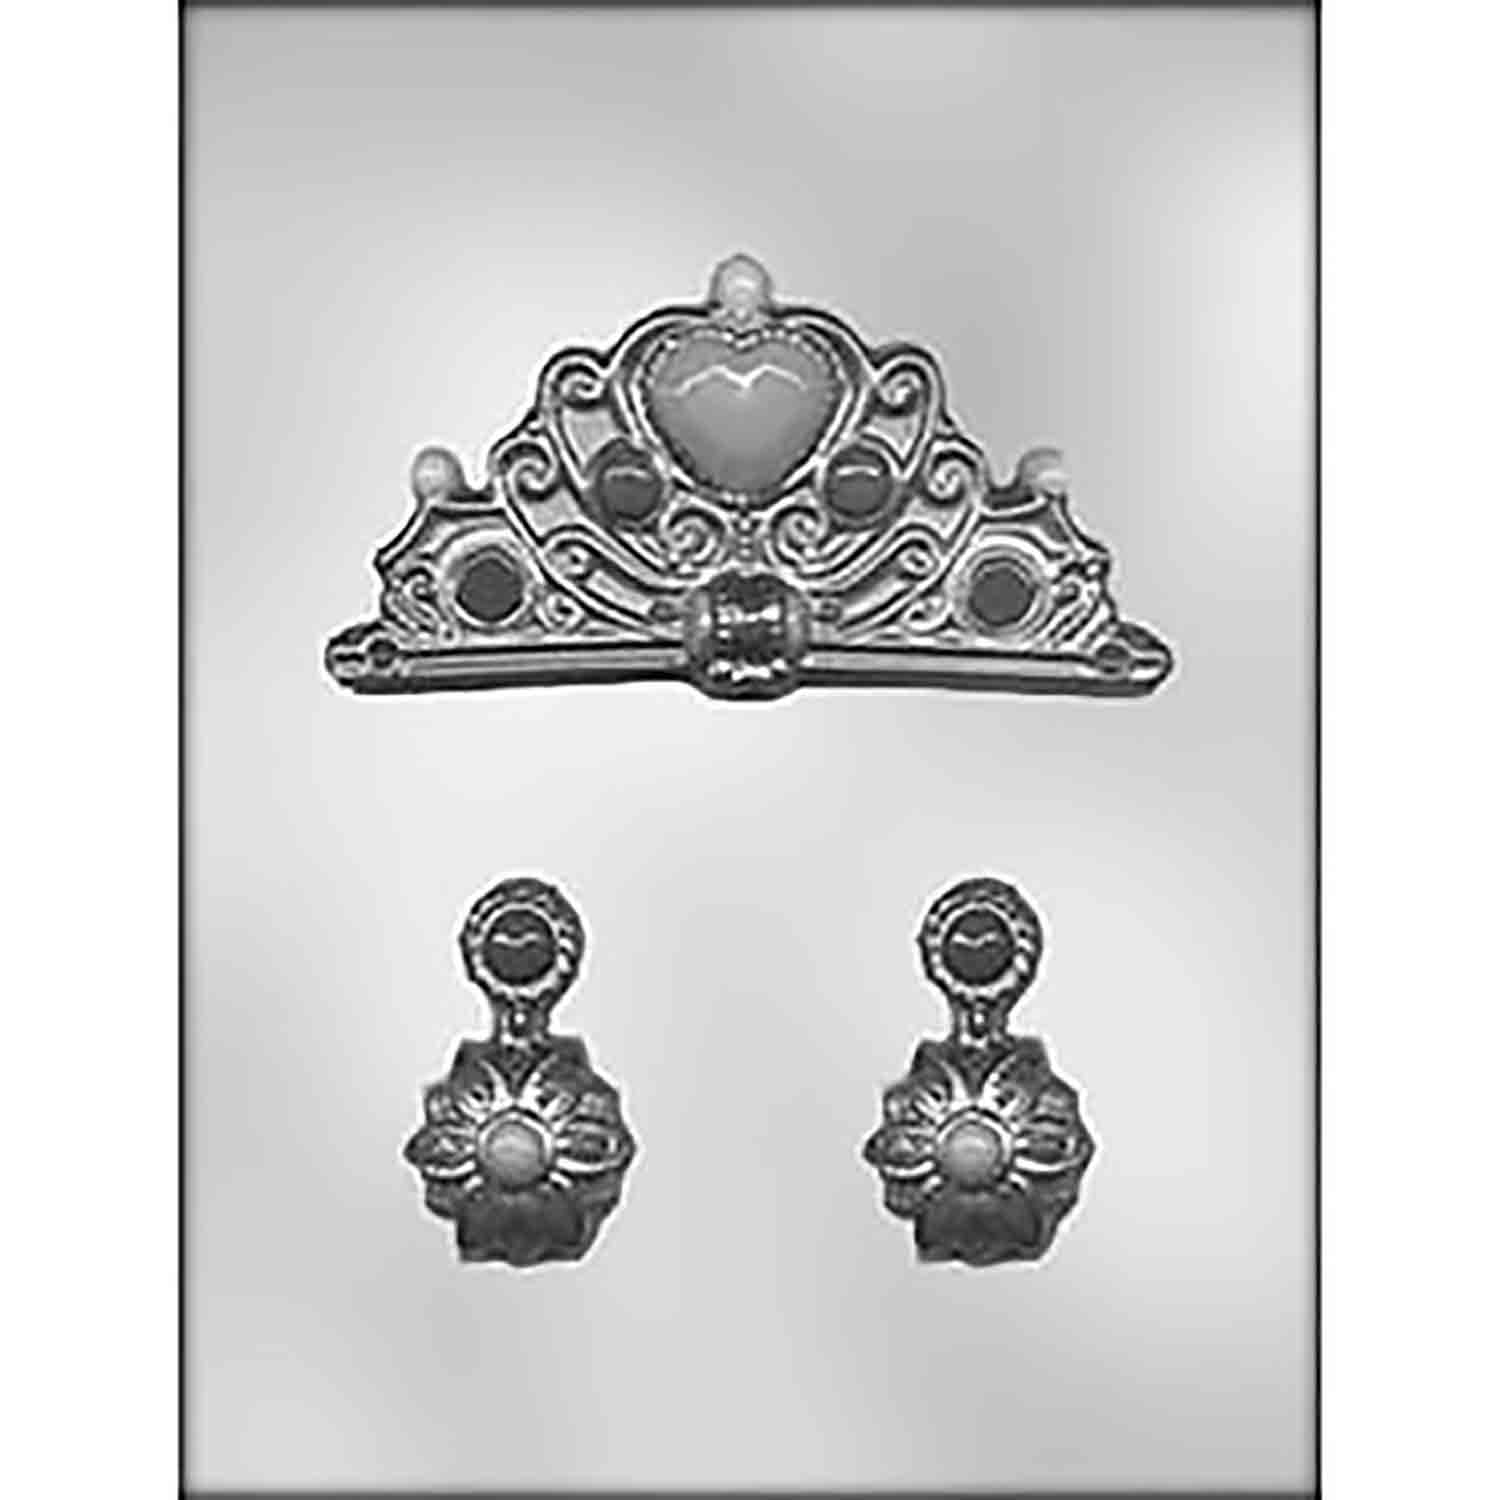 Crown and Earrings Chocolate Candy Mold